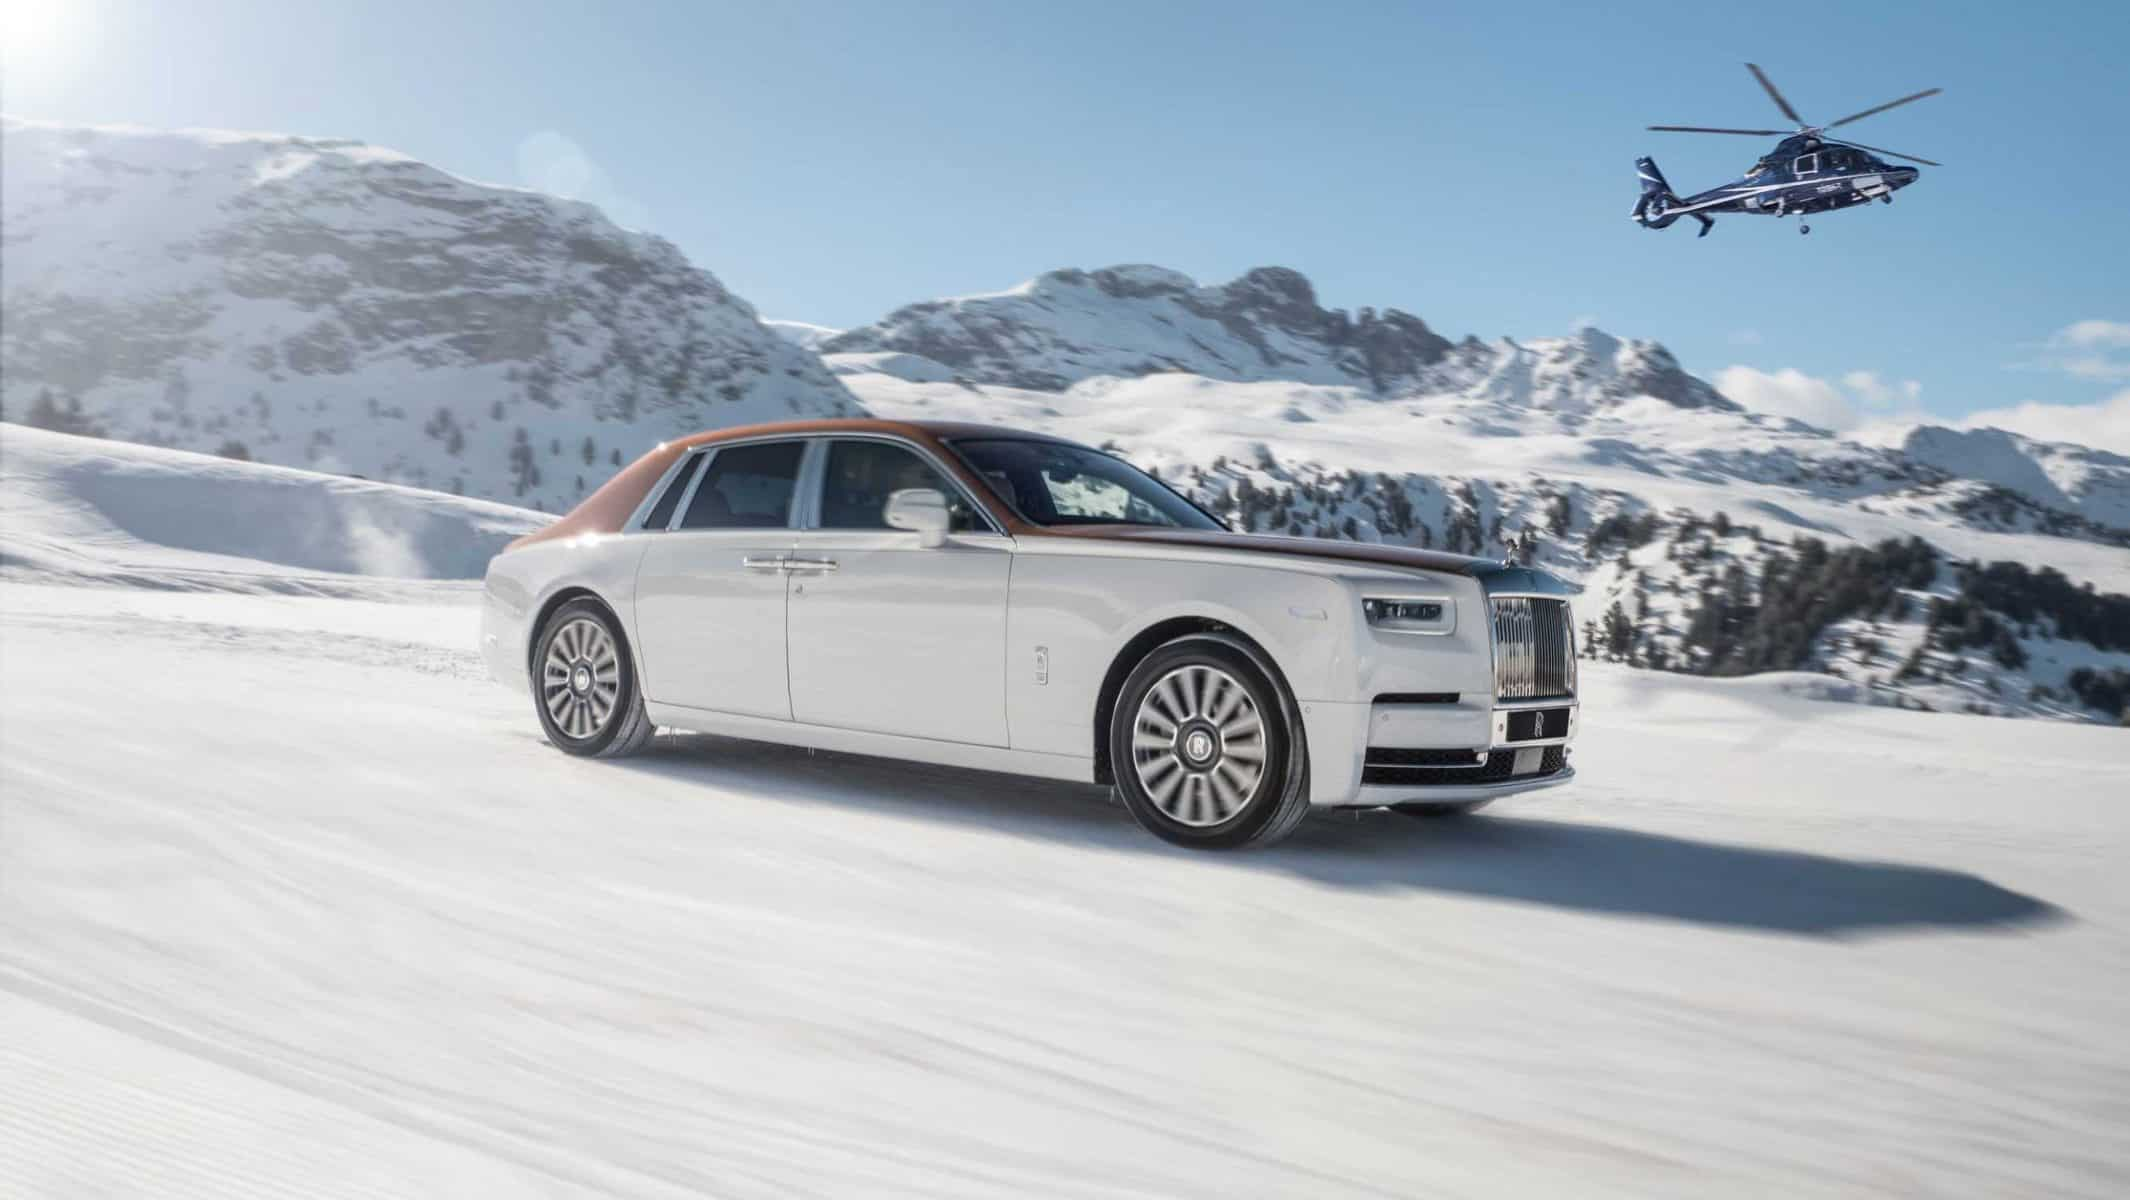 Rolls Royce Winter Driving in St Moritz